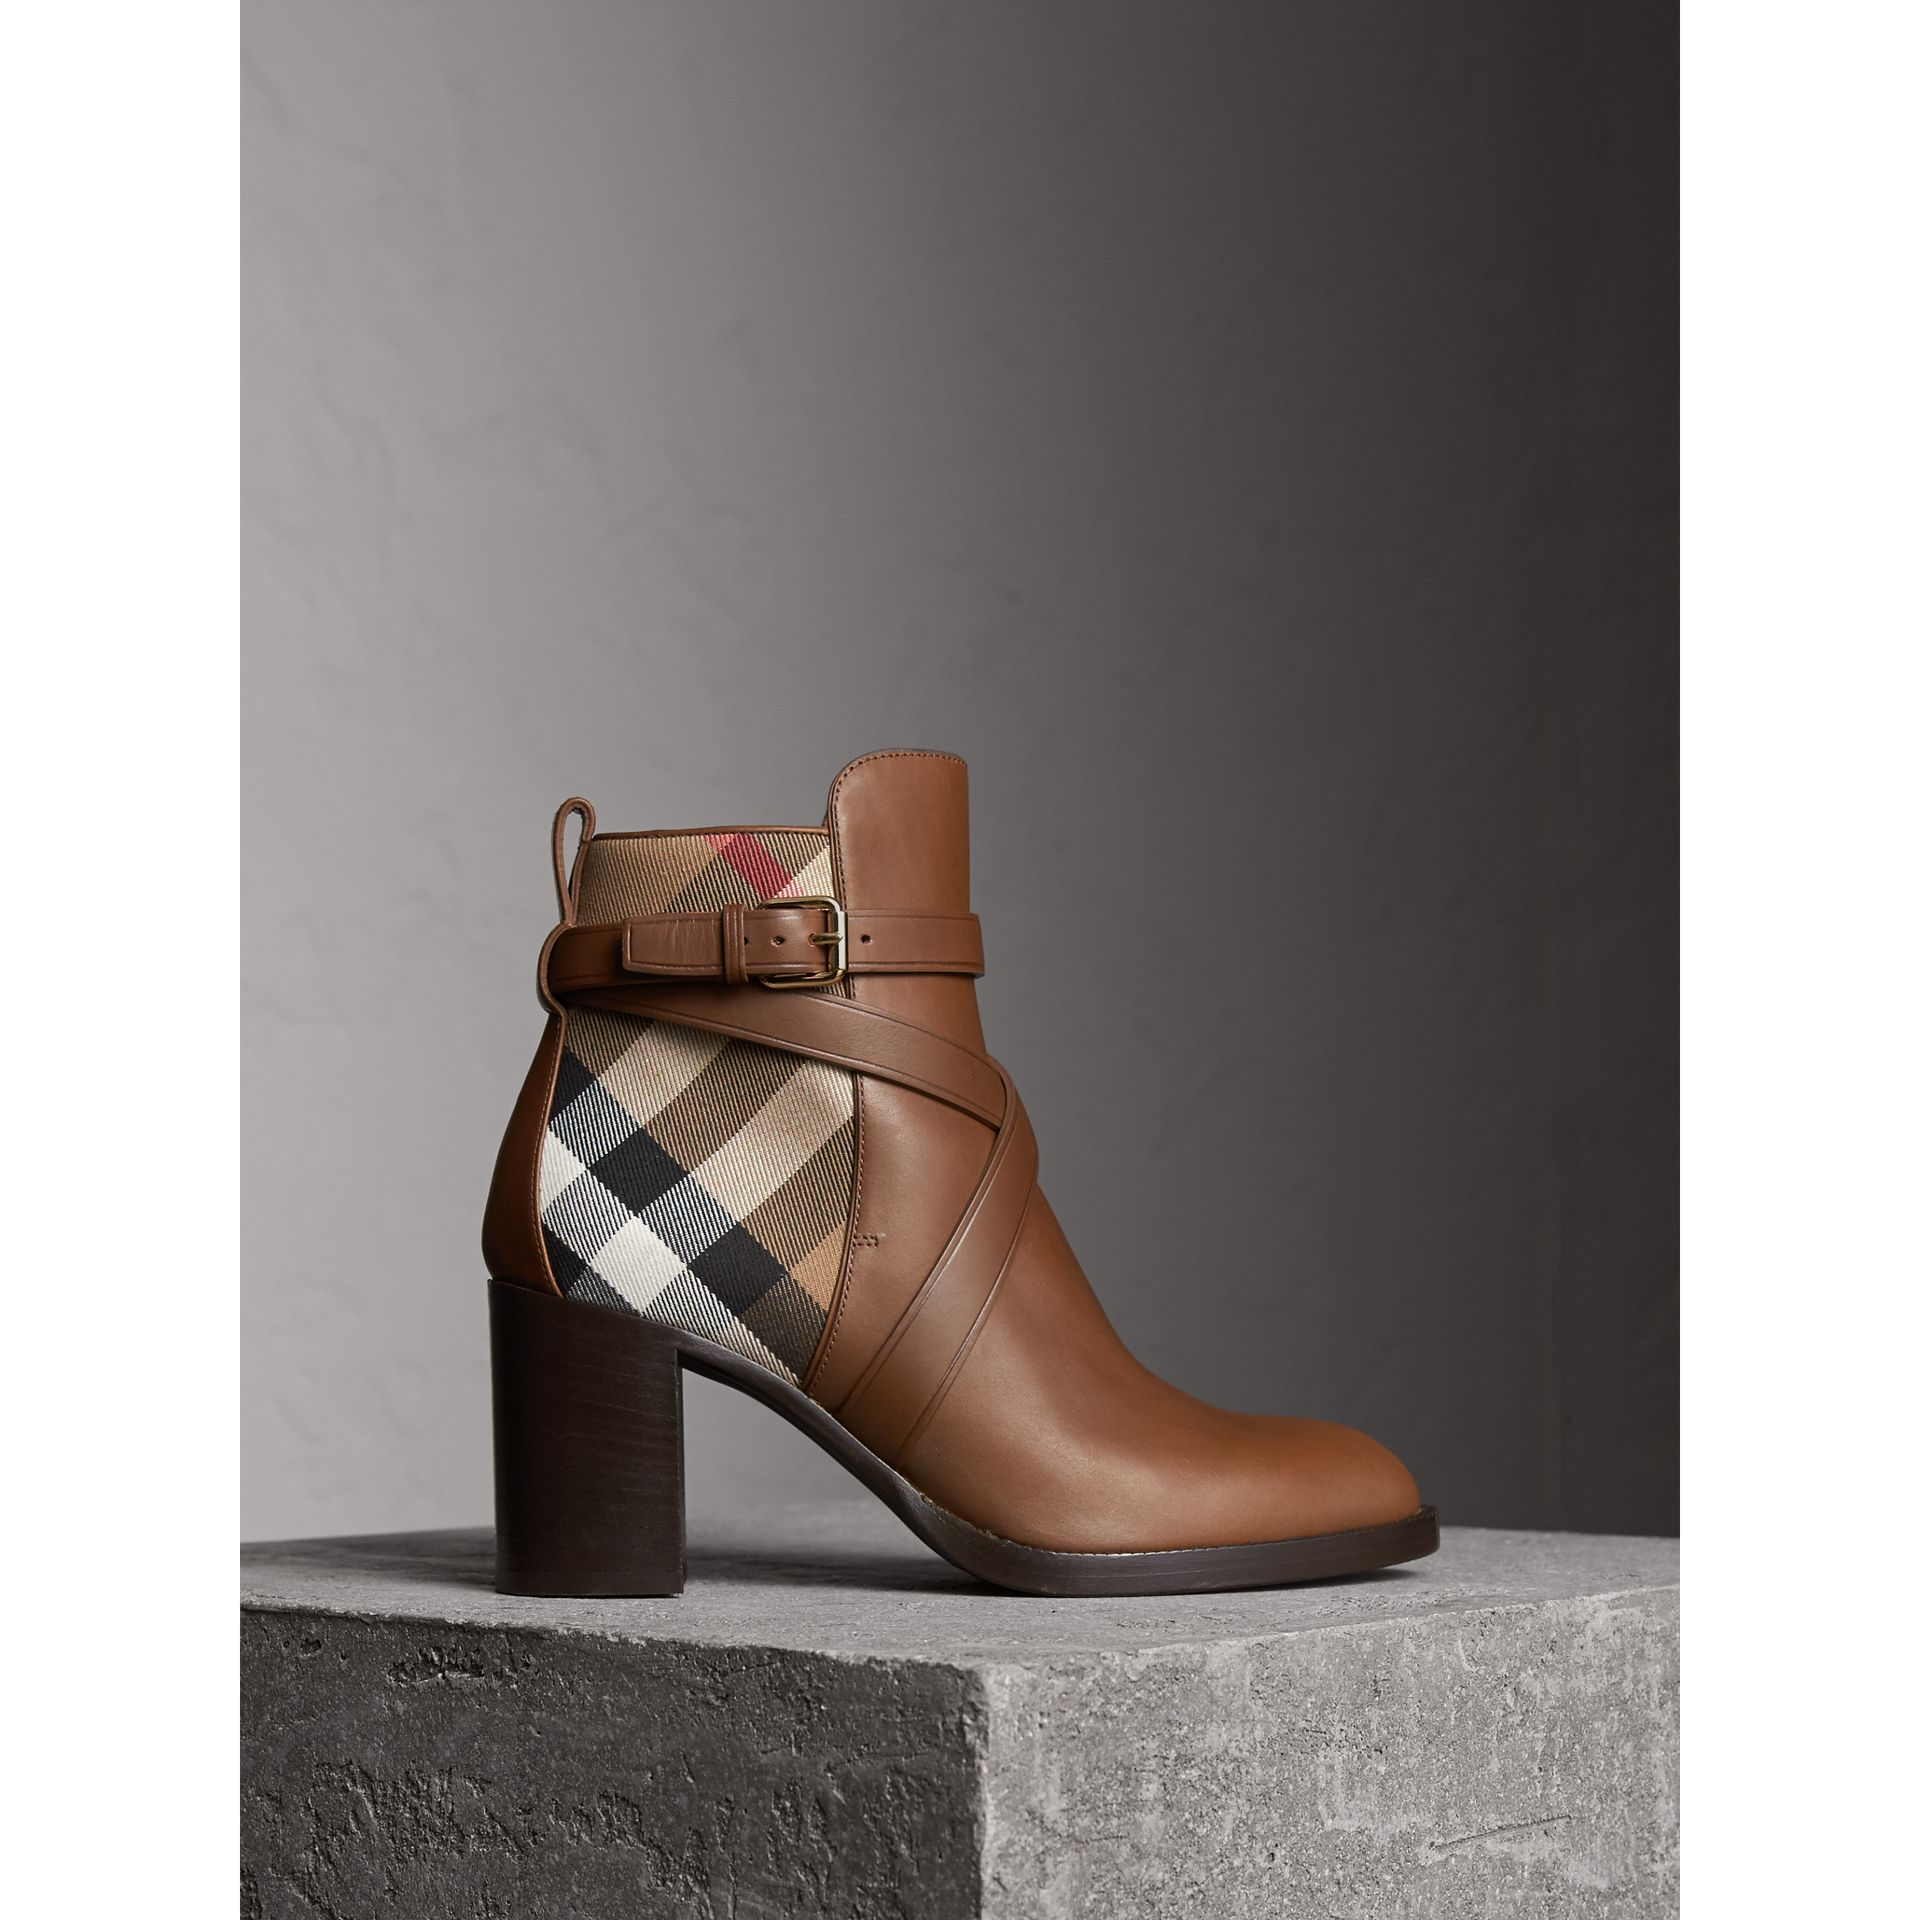 Bottines en cuir et coton House check (Camel Vif) - Femme | Burberry Canada - photo de la galerie 0